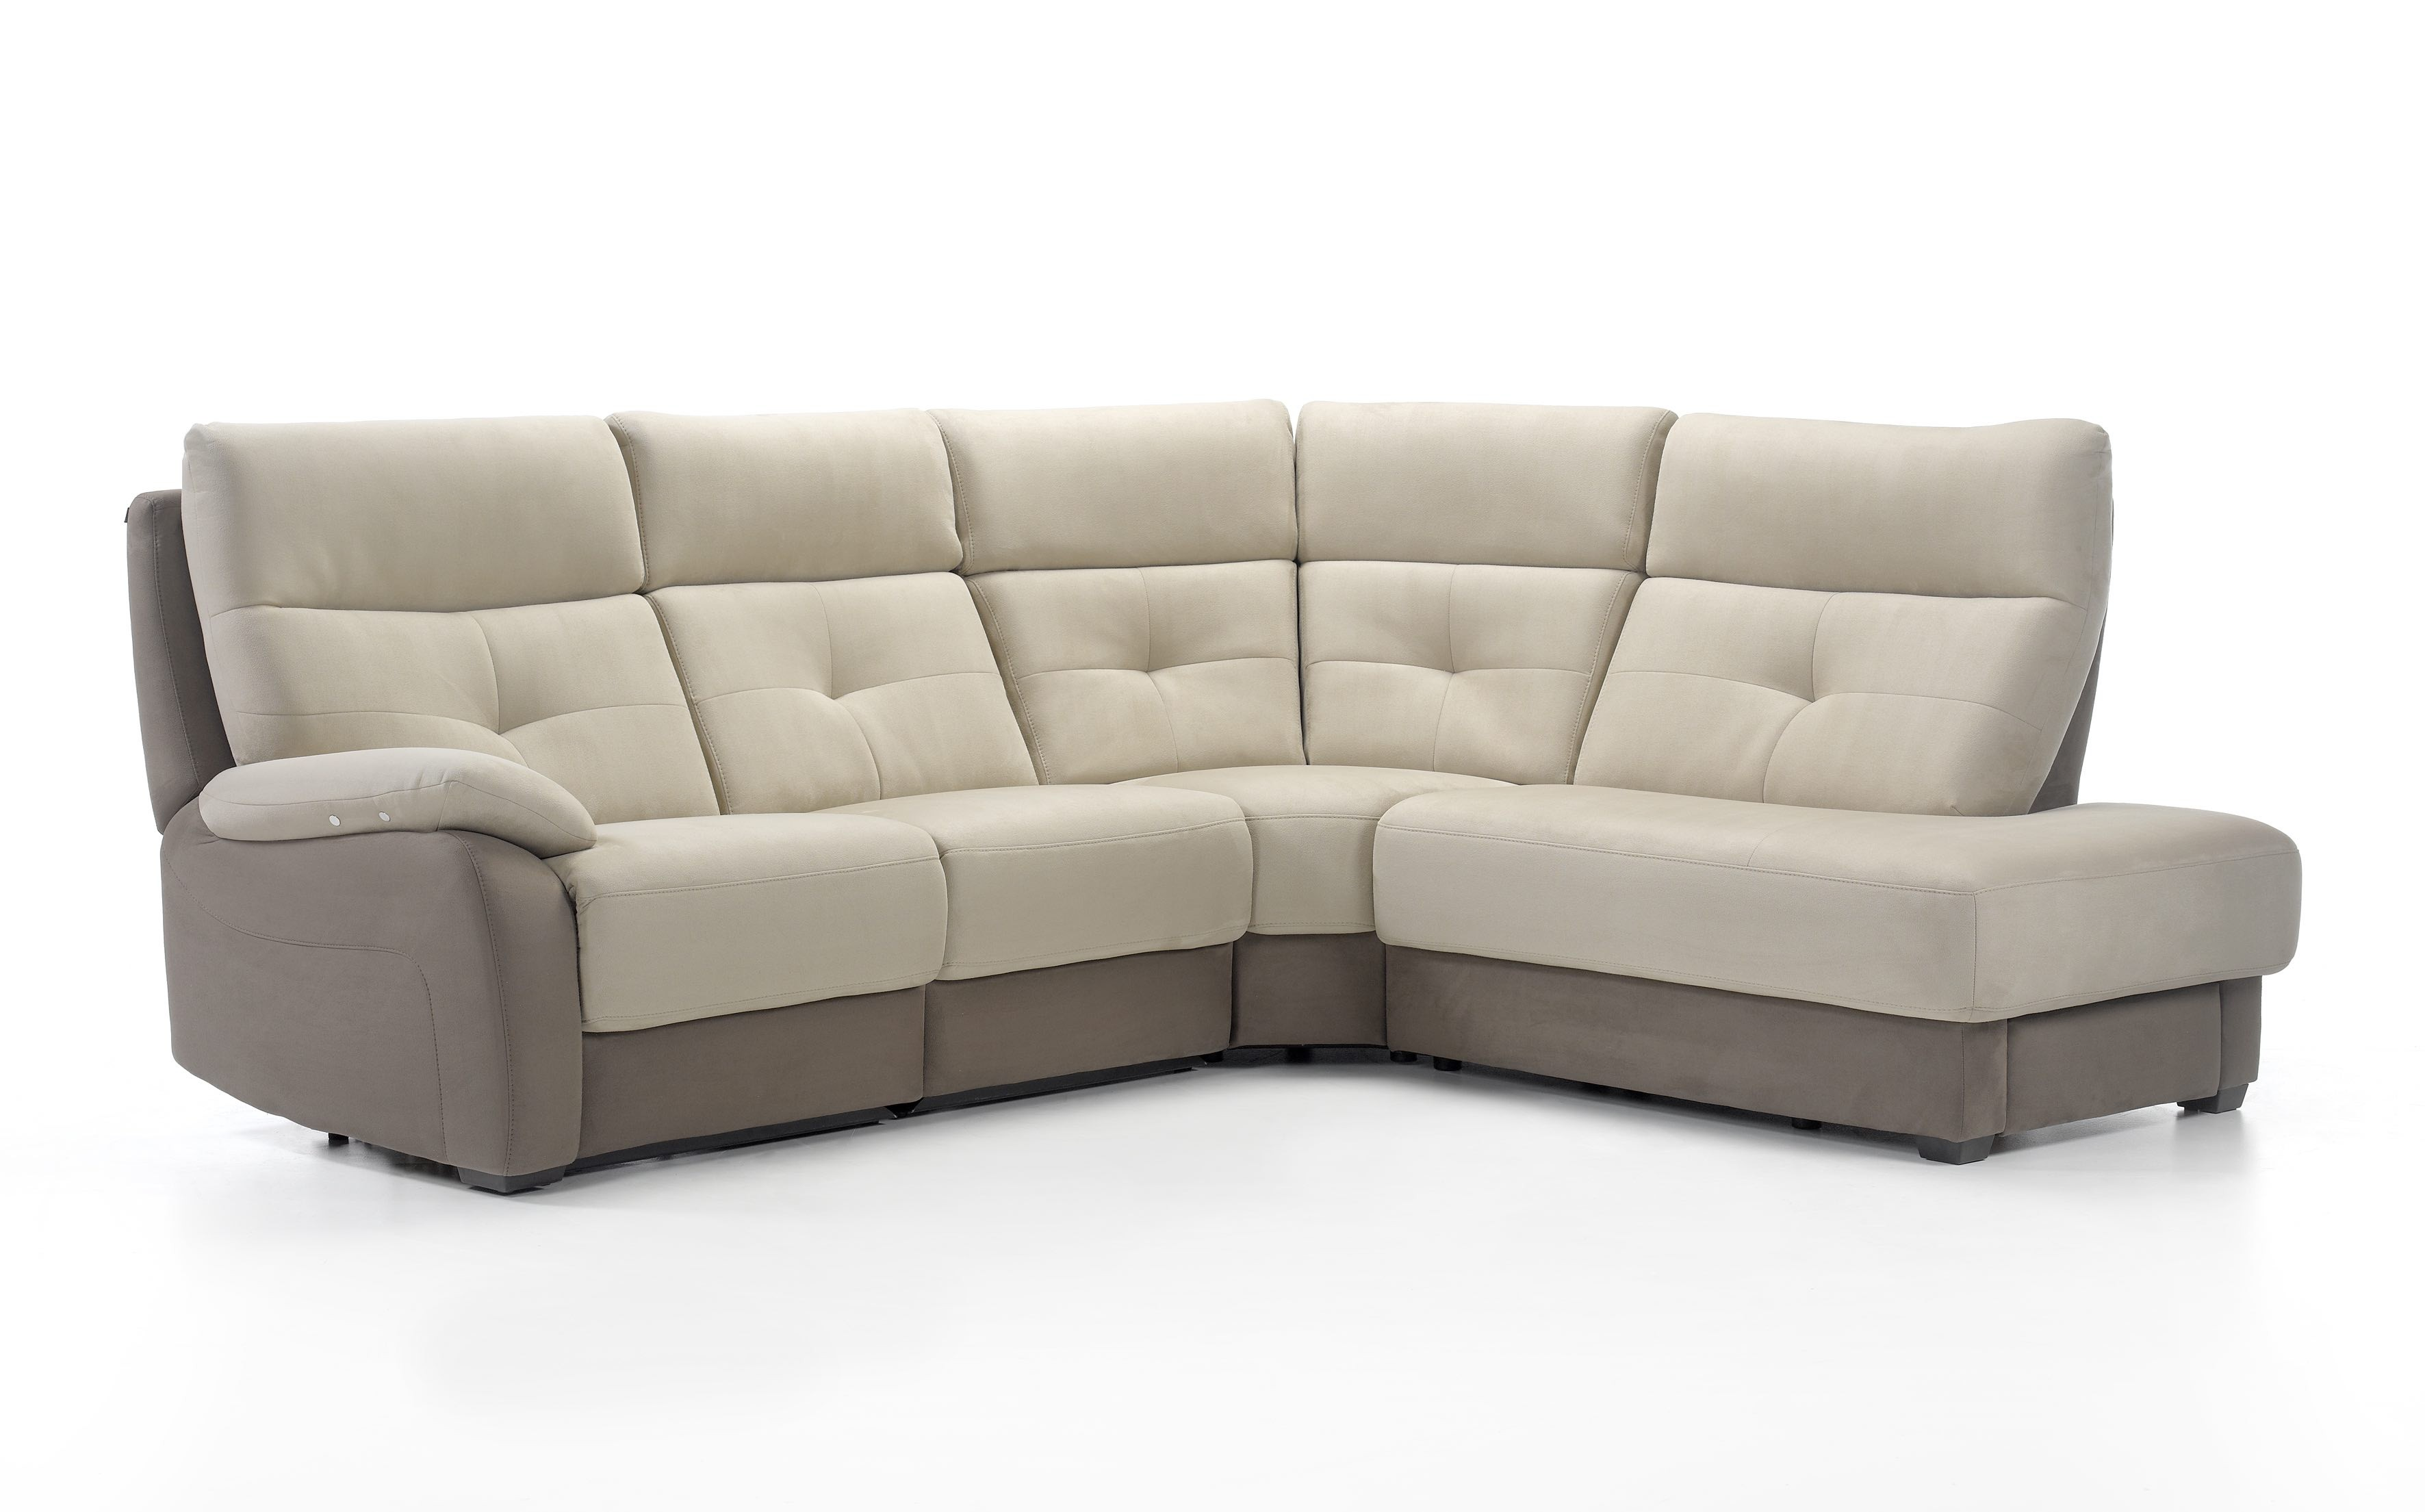 Florac Leather Sectional | Rom | Made in Belgium